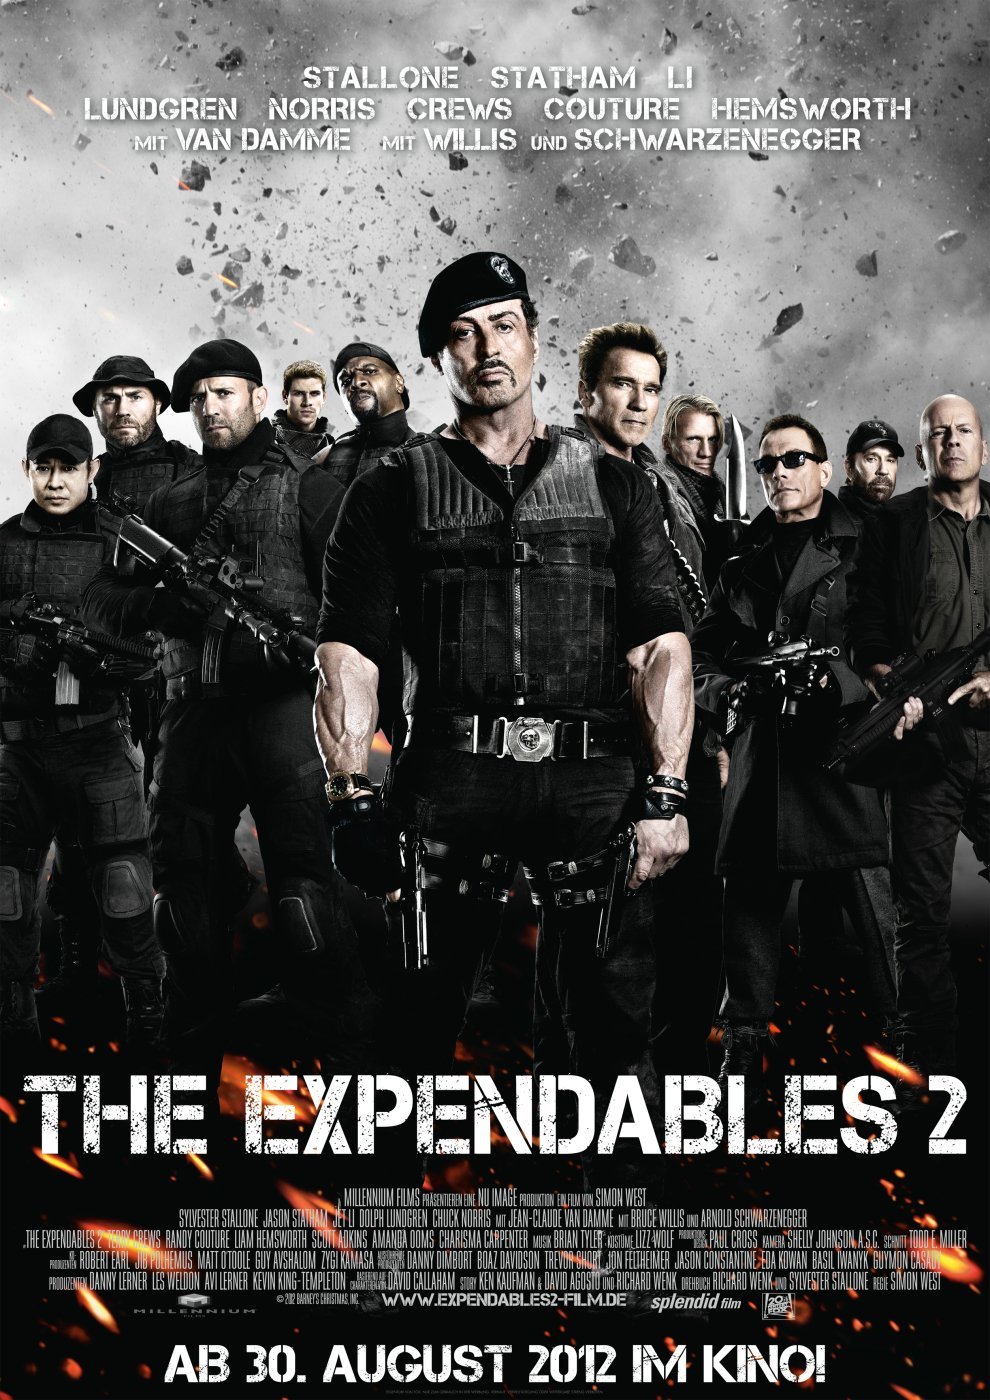 Expendables 2, The (2012) poster - FreeMoviePosters.net